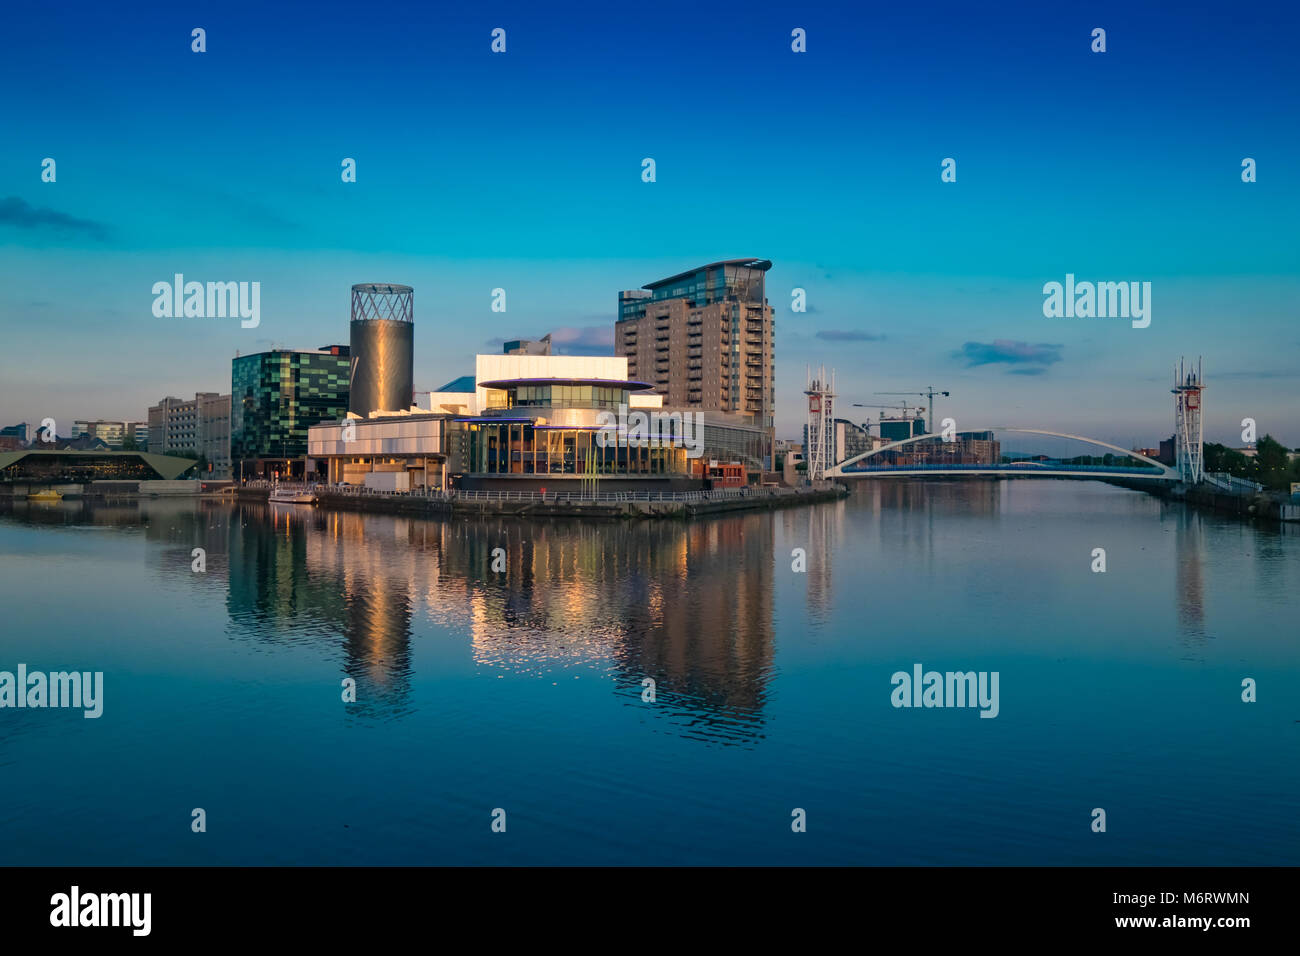 Lowry Theatre and Gallery at Salford Quays - Stock Image